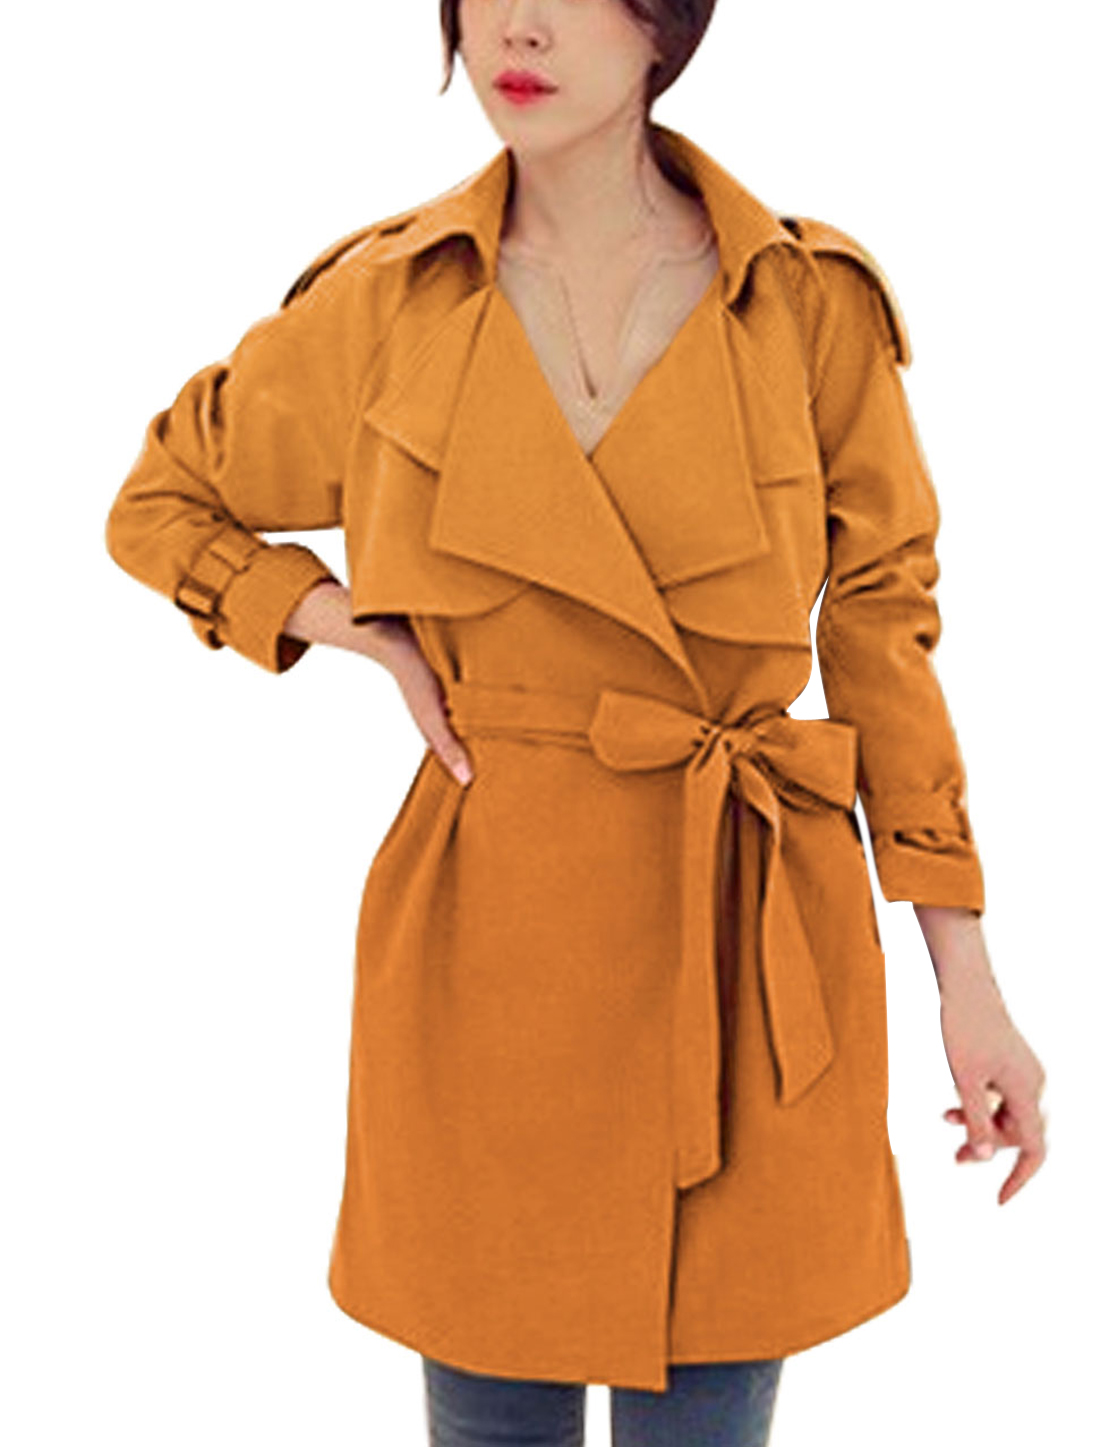 Ladies Orange Buttonless Cape Style Self Tie Strap Leisure Trench Coat M